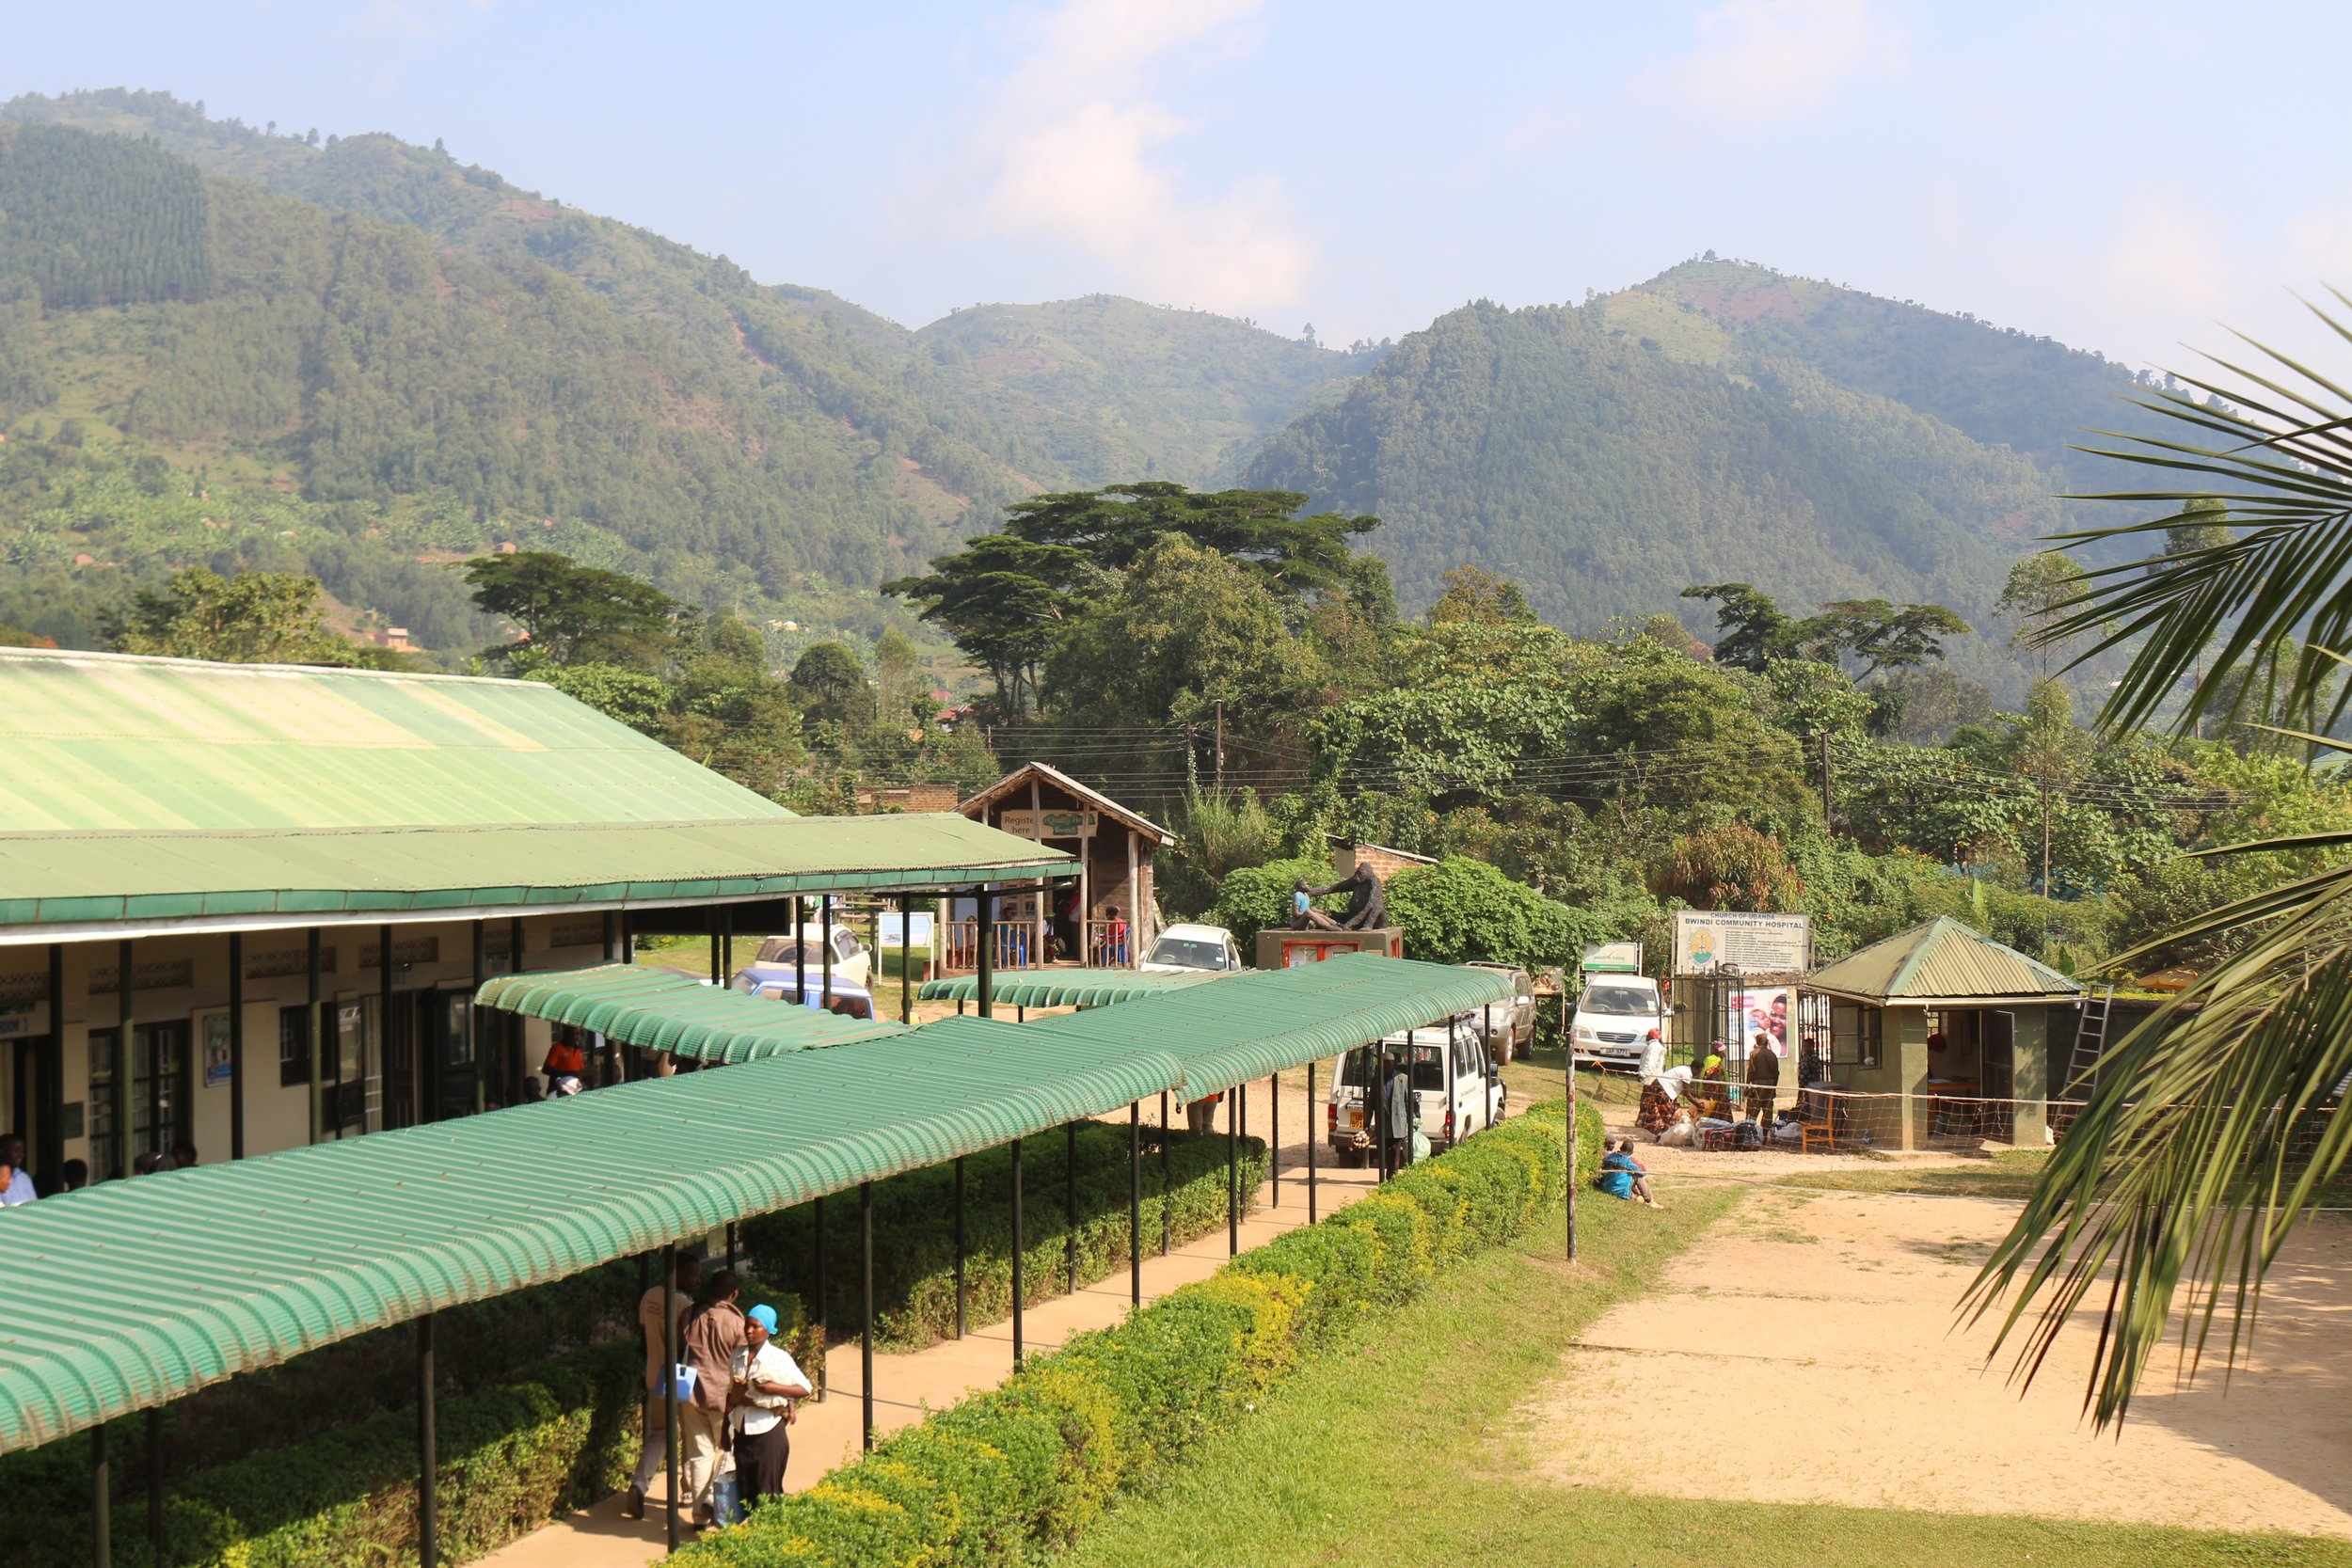 Bwindi Community Hospital, one of the rural health care facilities in Uganda where ITW has introduced an ultrasound program.